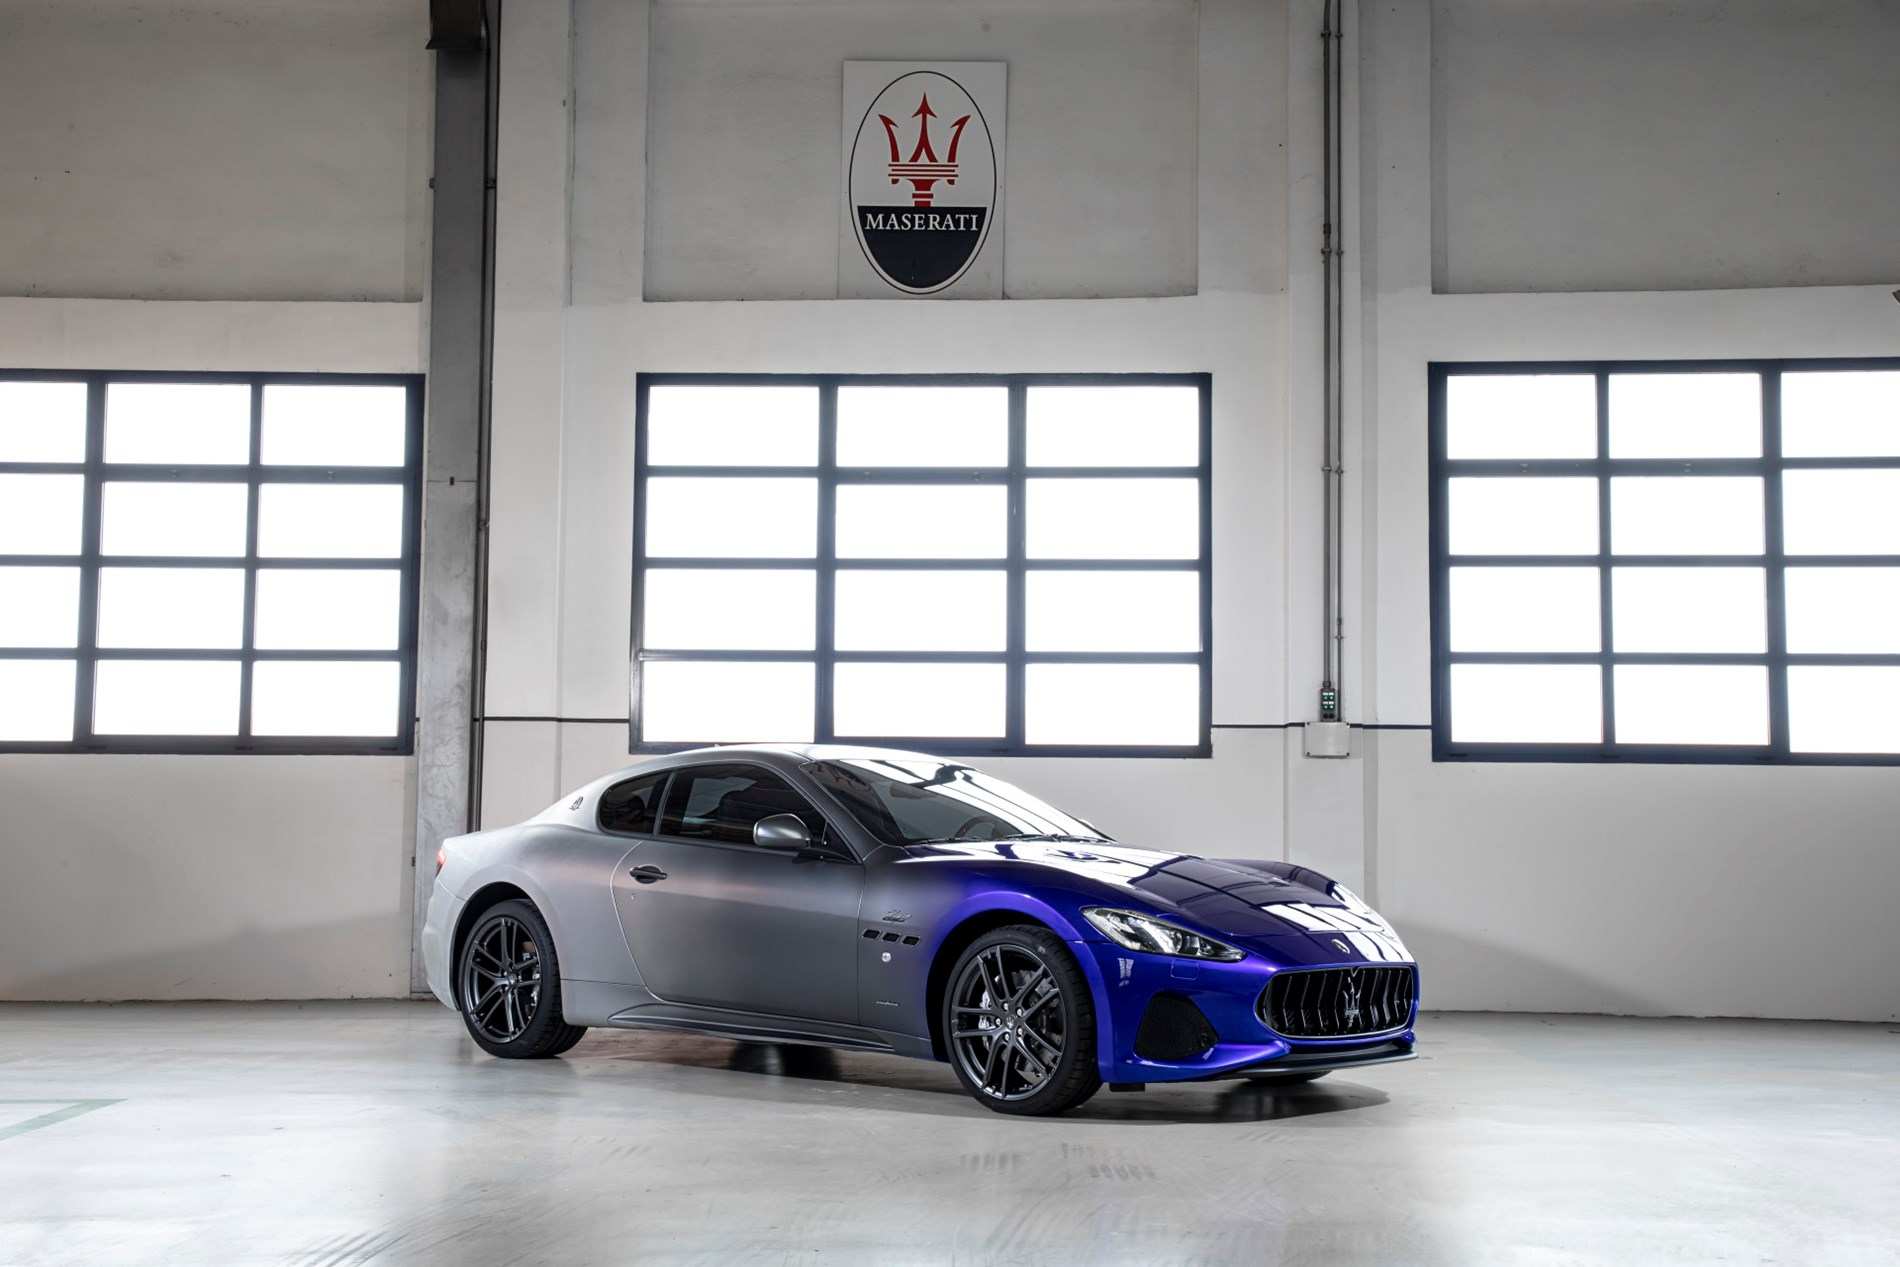 GranTurismo Zéda projects Maserati towards the future: from the Modena plant the new era for the Brand begins